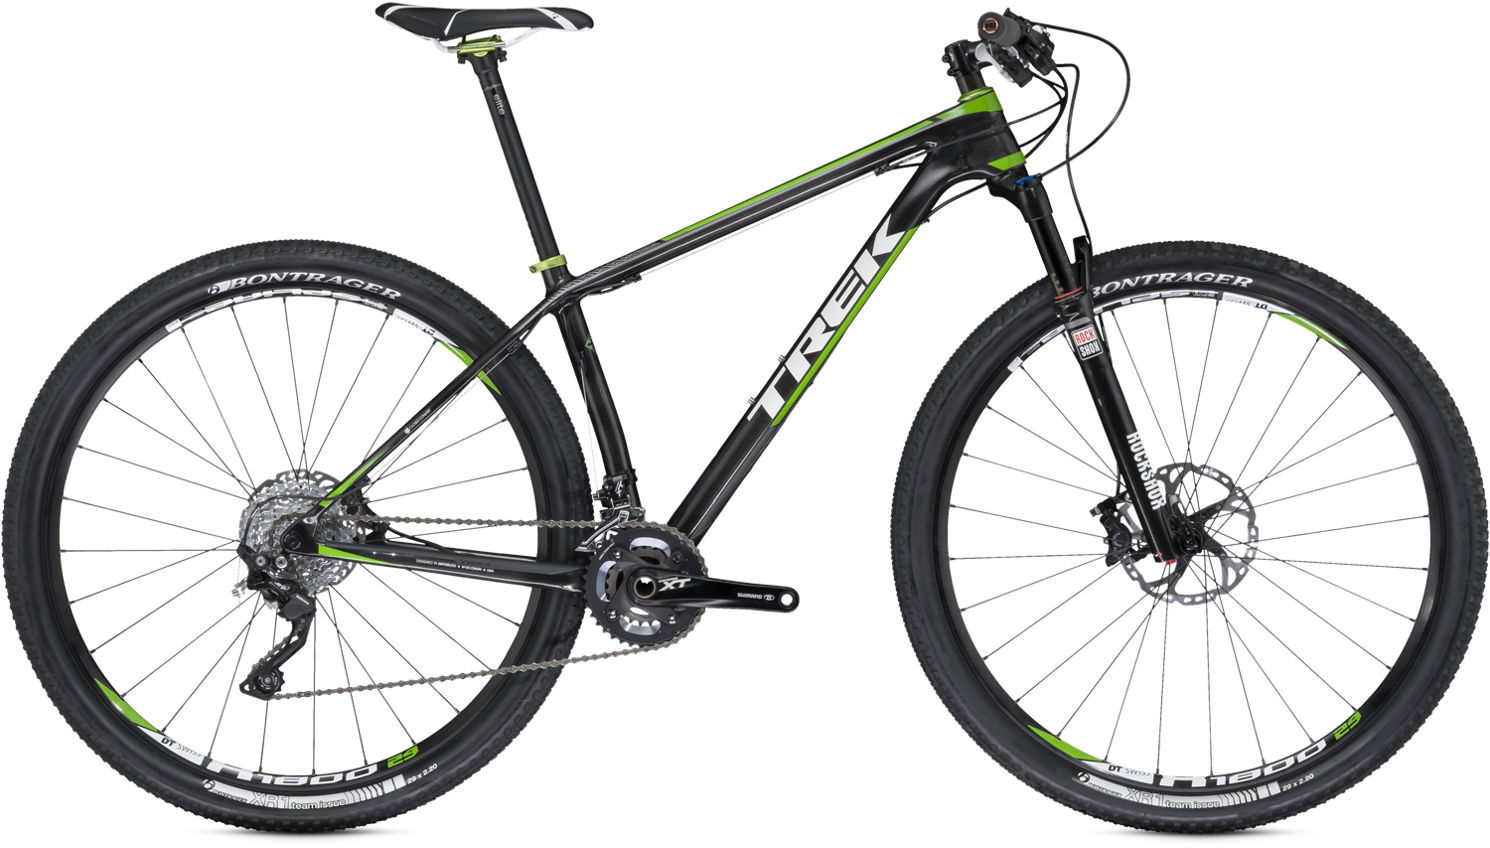 Bikepedia Specialized Roubaix Elite additionally 2014 Trek Superfly Fs 8 Reviews in addition 2000 Grand Prix 4t65e Hd Transmission Exploded View furthermore 2006 F150 4 Wheel Drive Relay in addition 2000 Buick Lesabre Answers  Answers The Most. on 2016 honda accord mpg